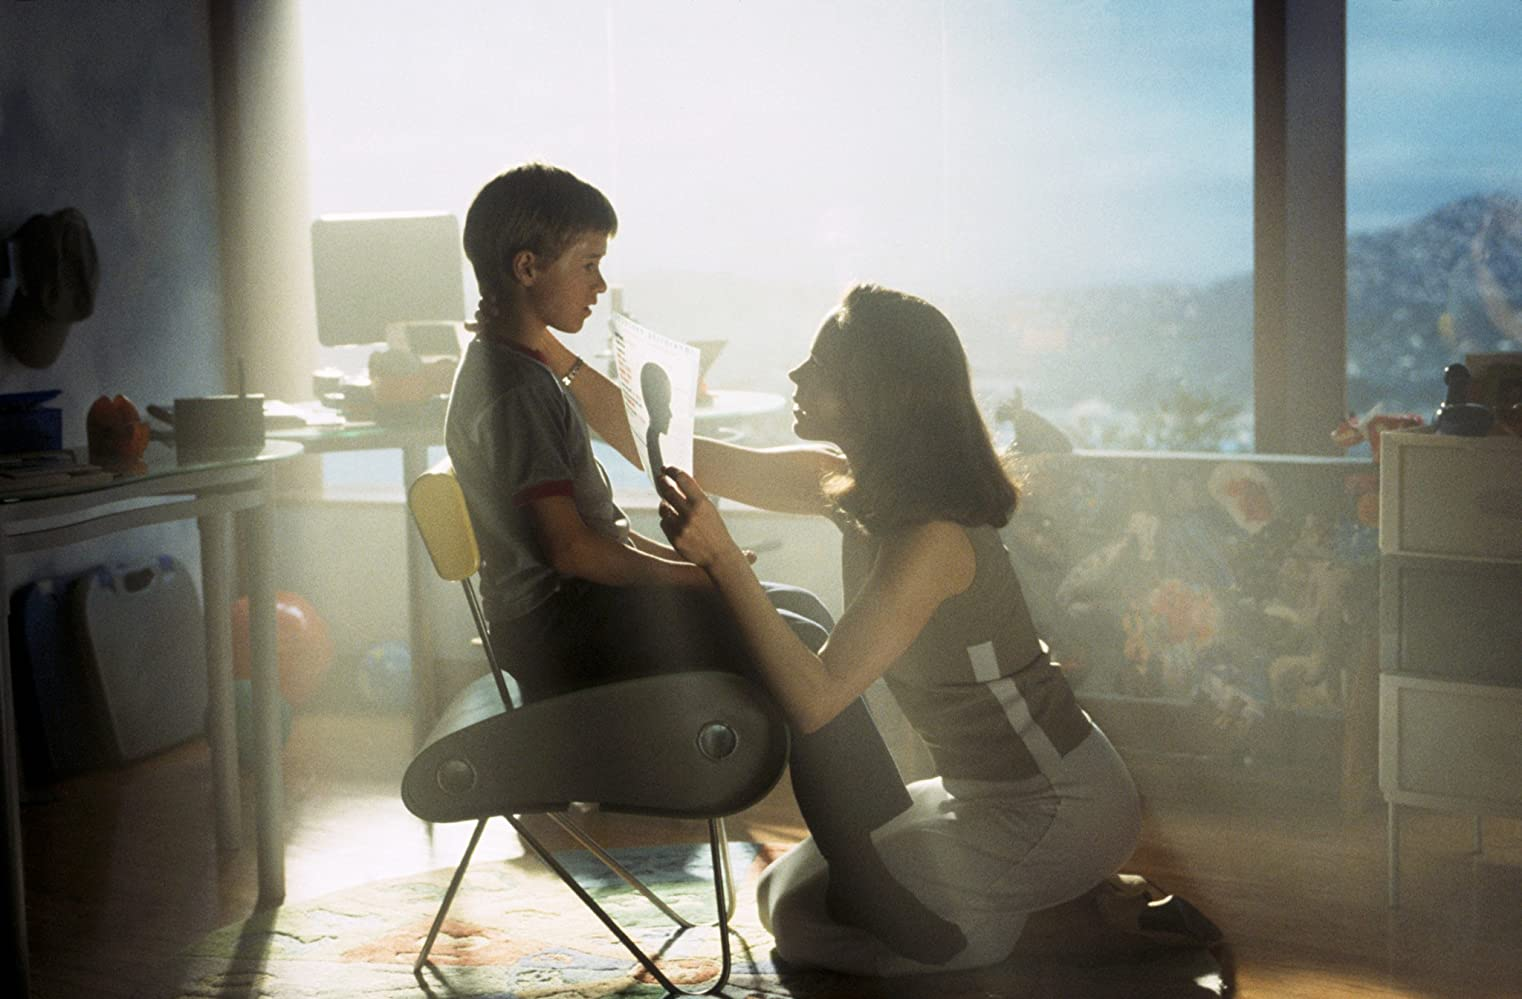 A scene from the movie A.I. Artificial Intelligence: a robotic child gets activated by a woman whose son is in deep coma.